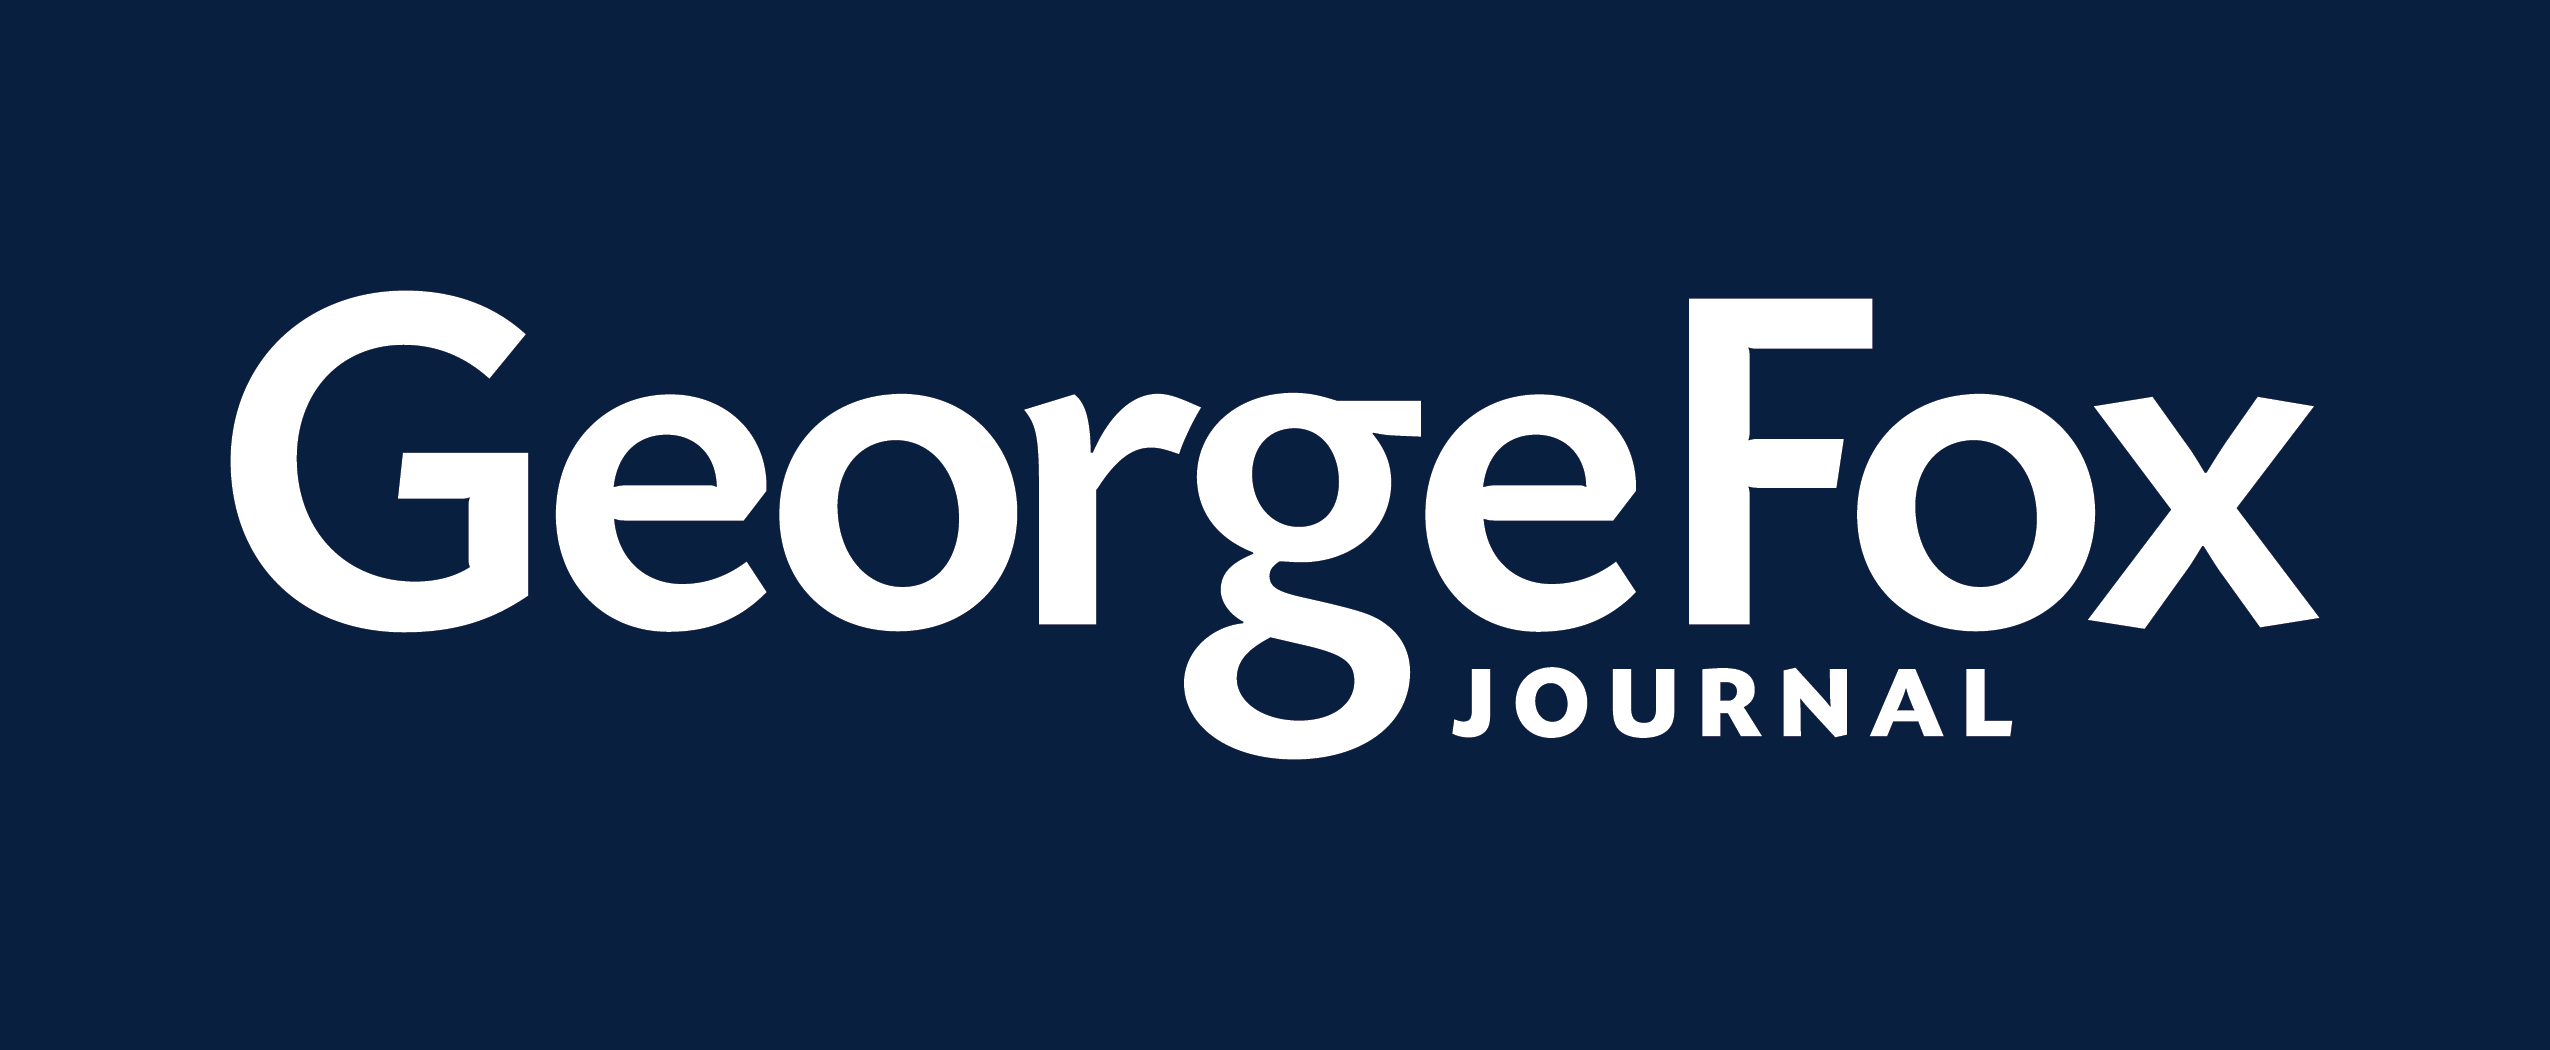 George Fox Journal